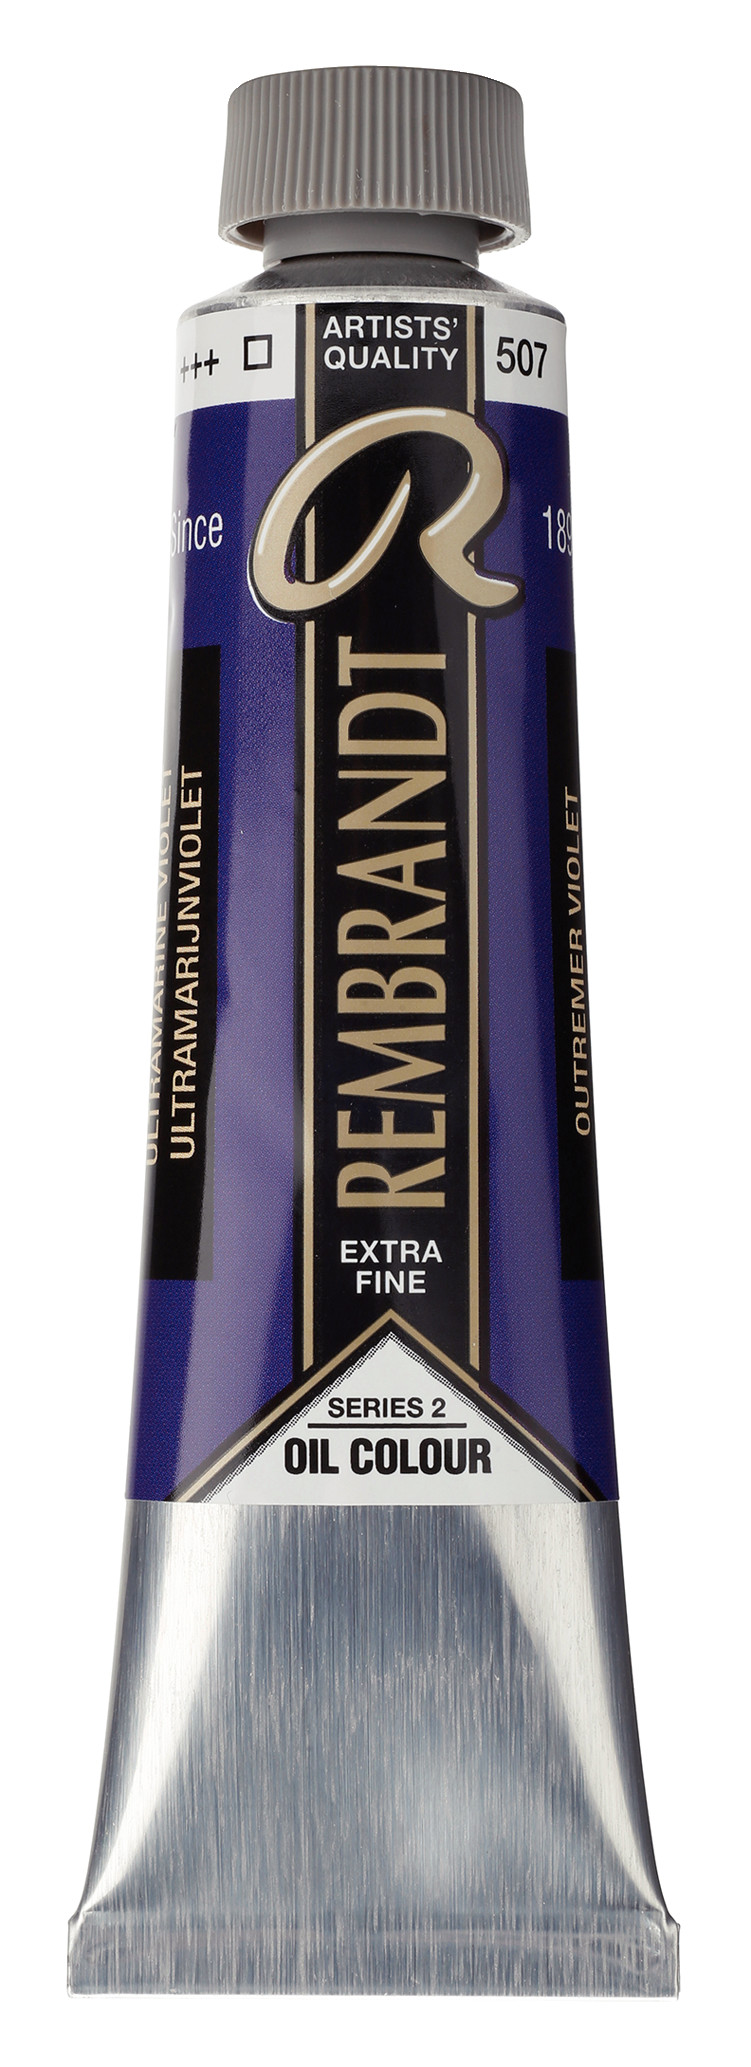 Rembrandt Oil colour Paint Ultramarine Violet (507) 40ml Tube